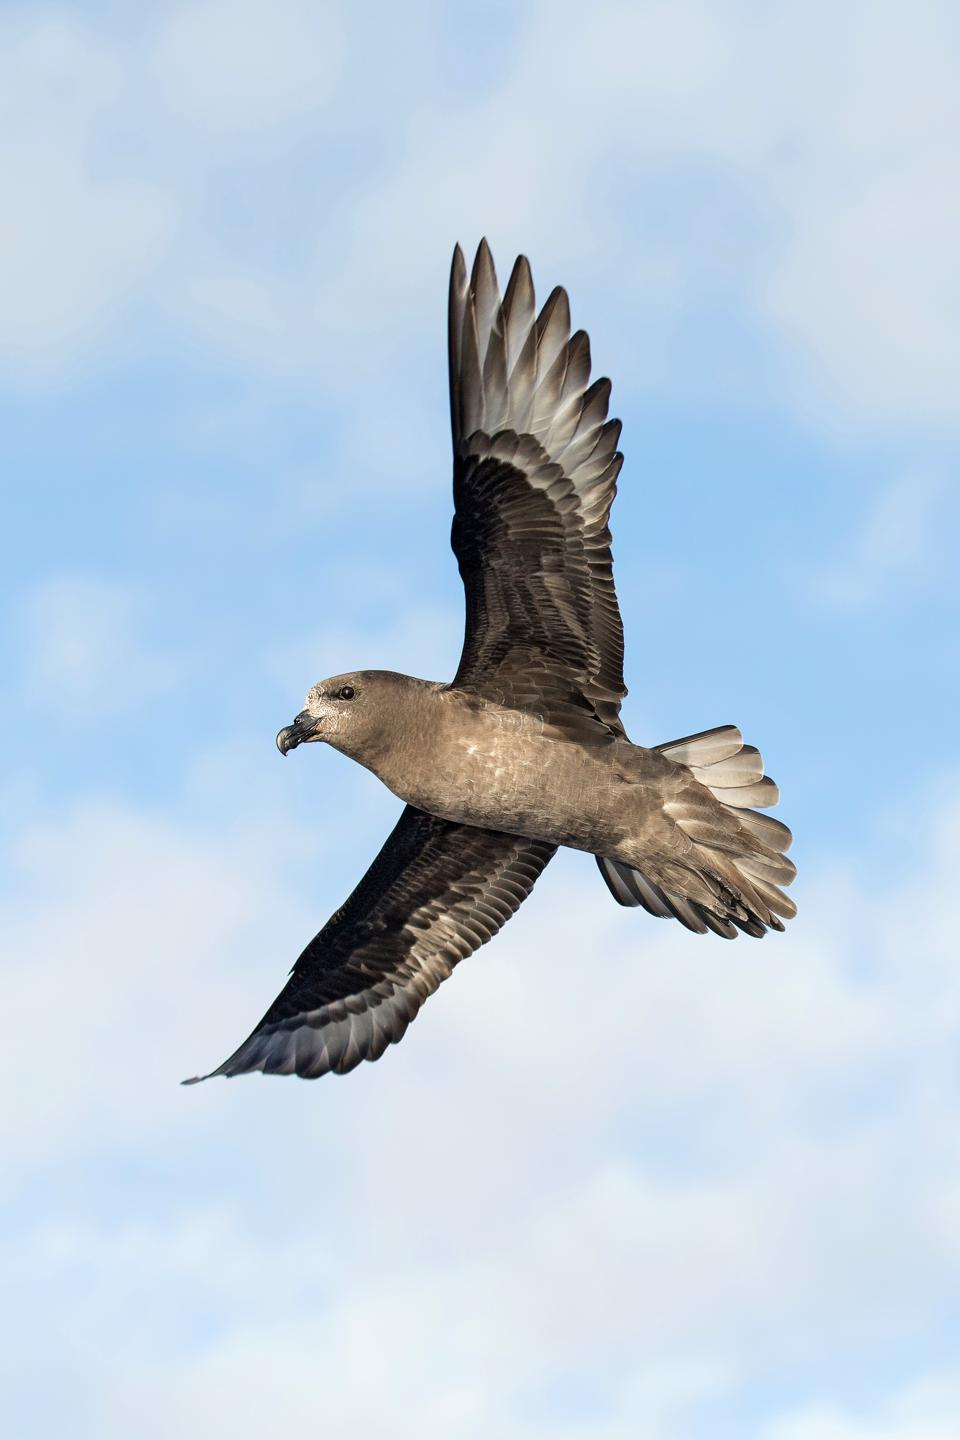 A petrel bird flying high with blue sky in backgorund.